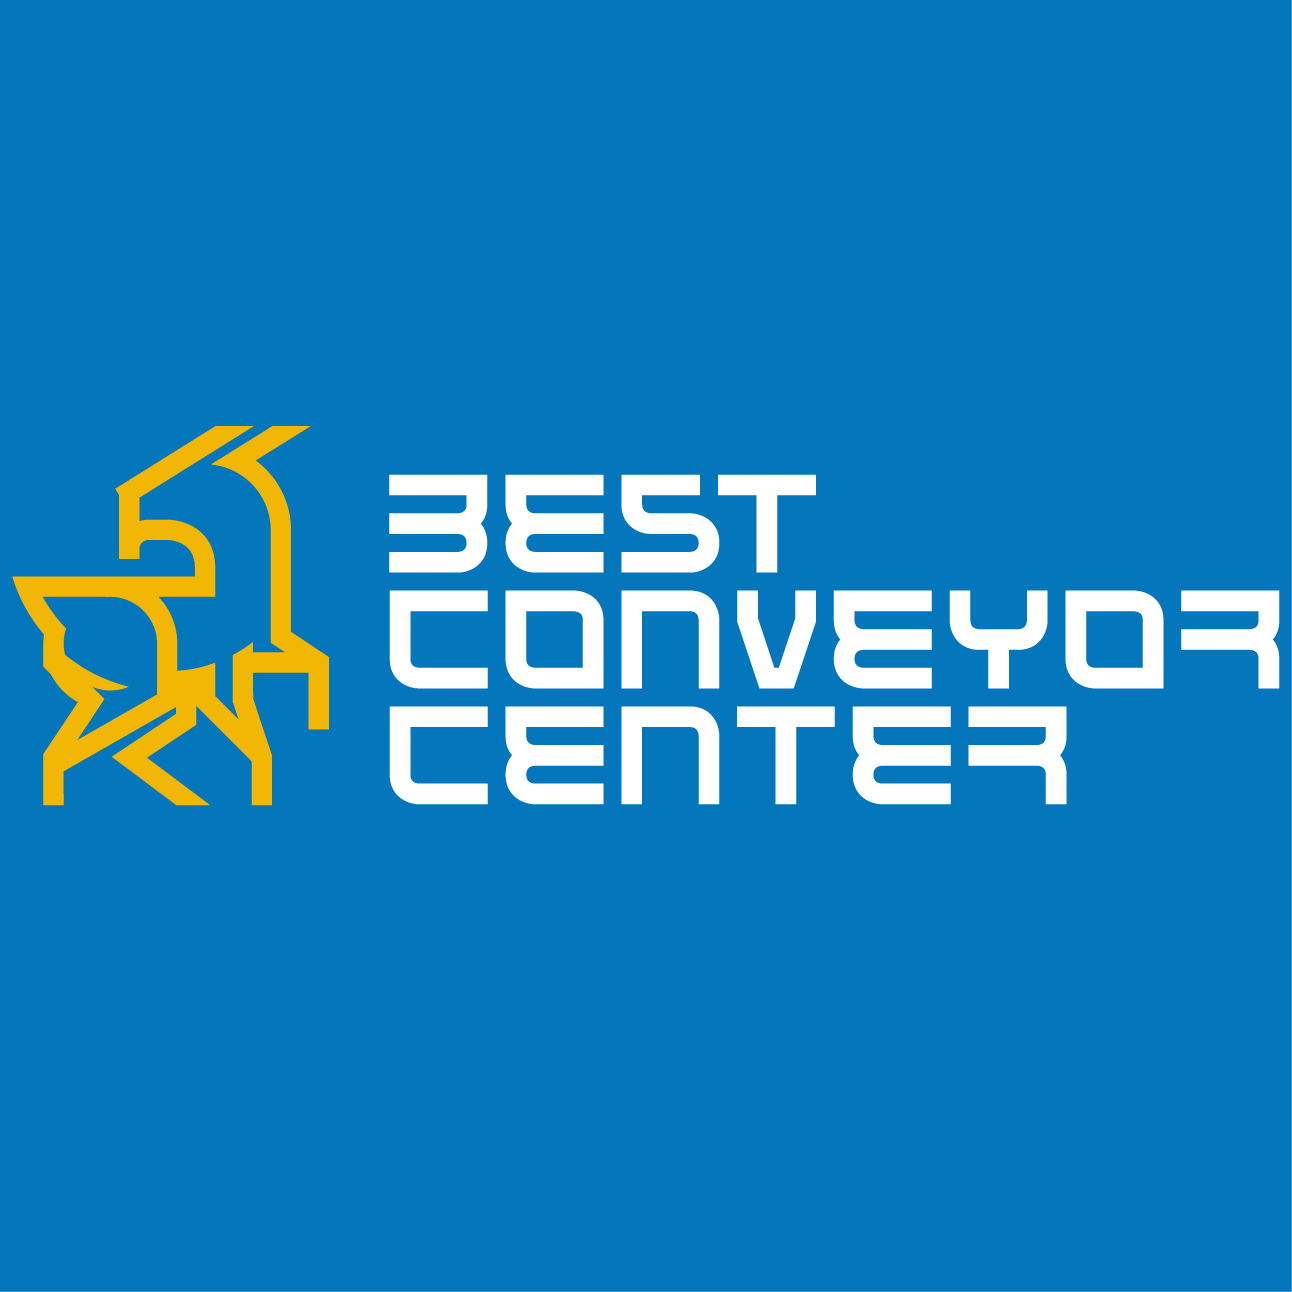 Best Conveyor Center